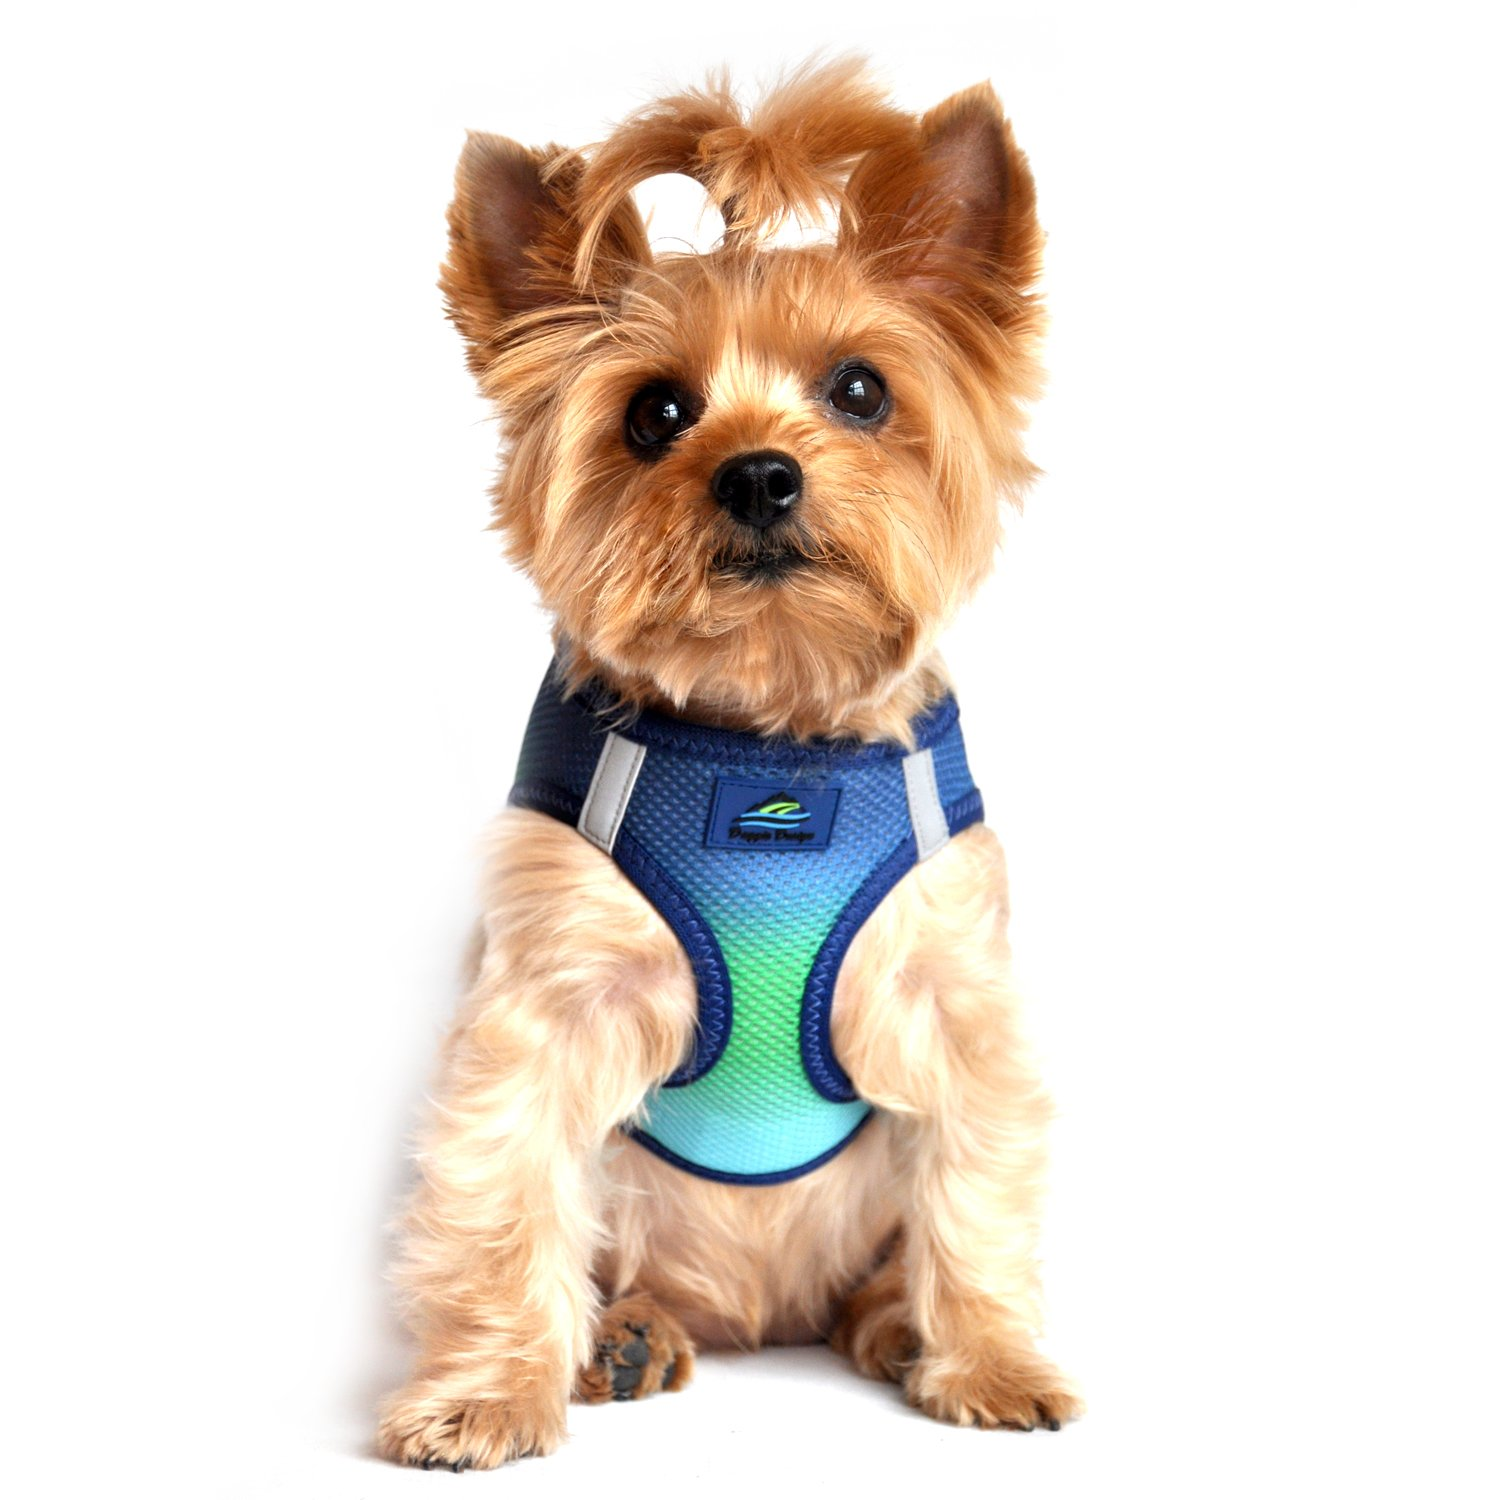 5. CHOKE FREE REFLECTIVE STEP IN ULTRA HARNESS